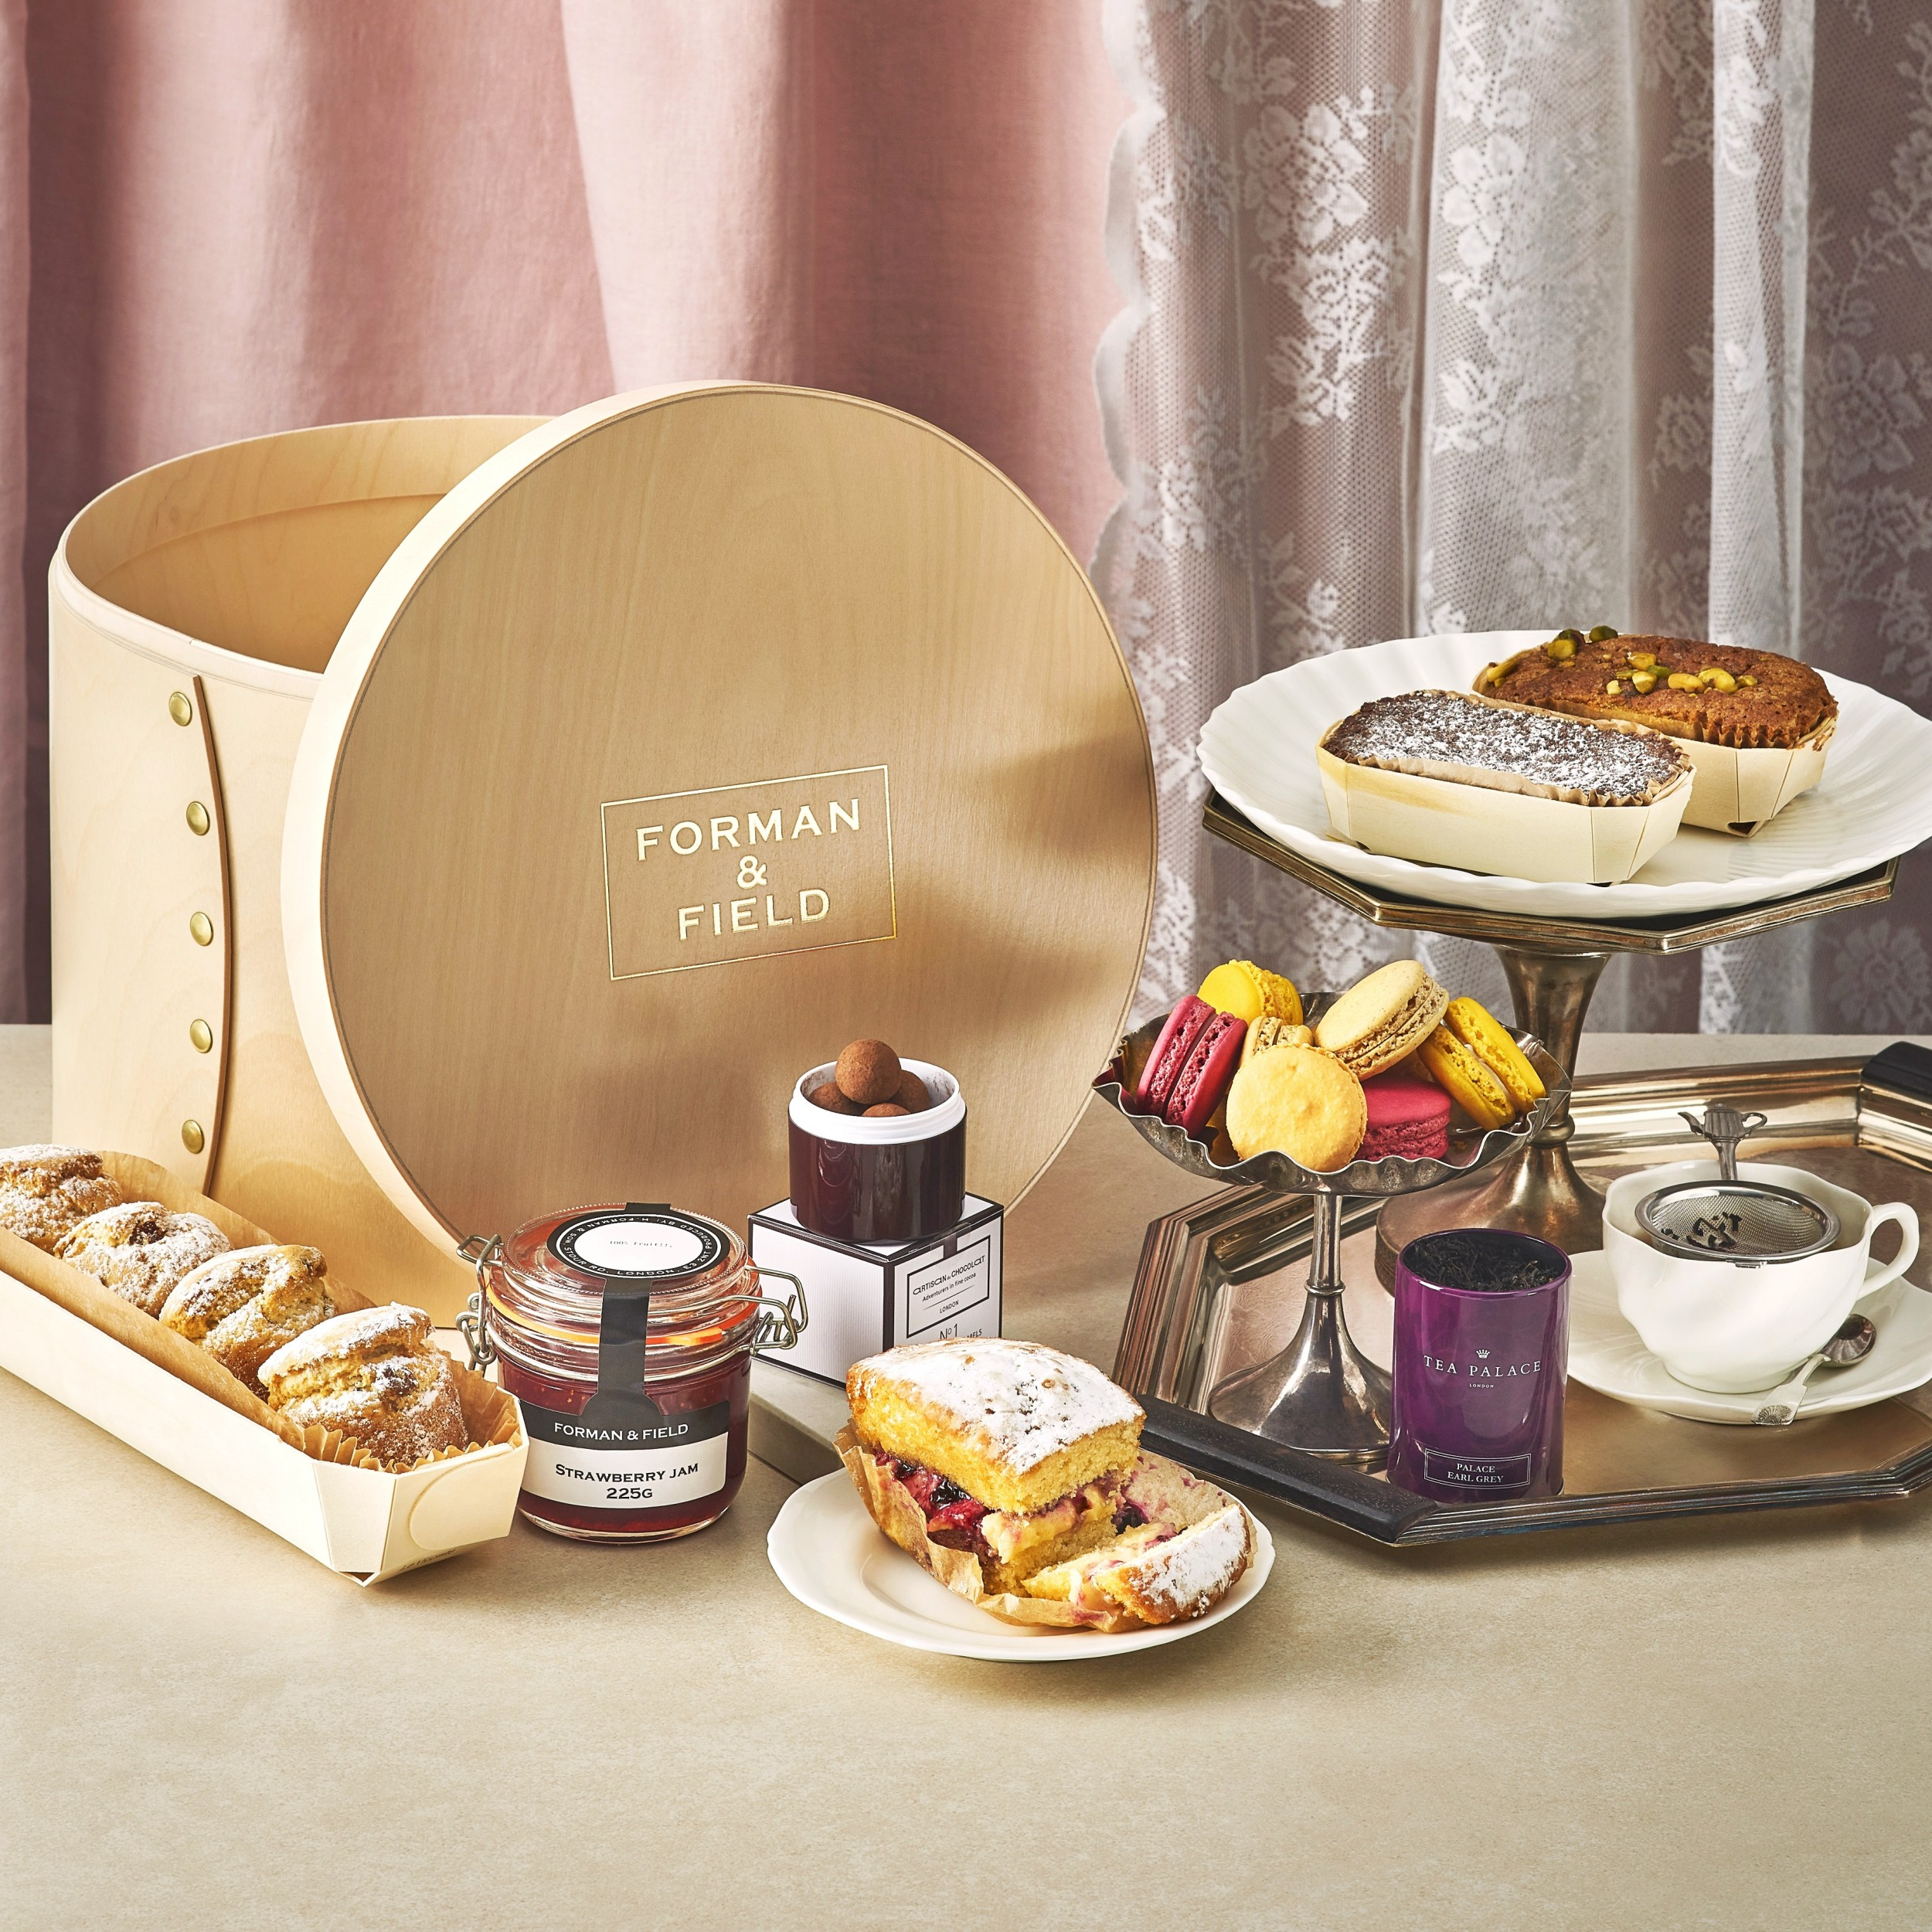 Image of Afternoon Tea for Two (or Three)